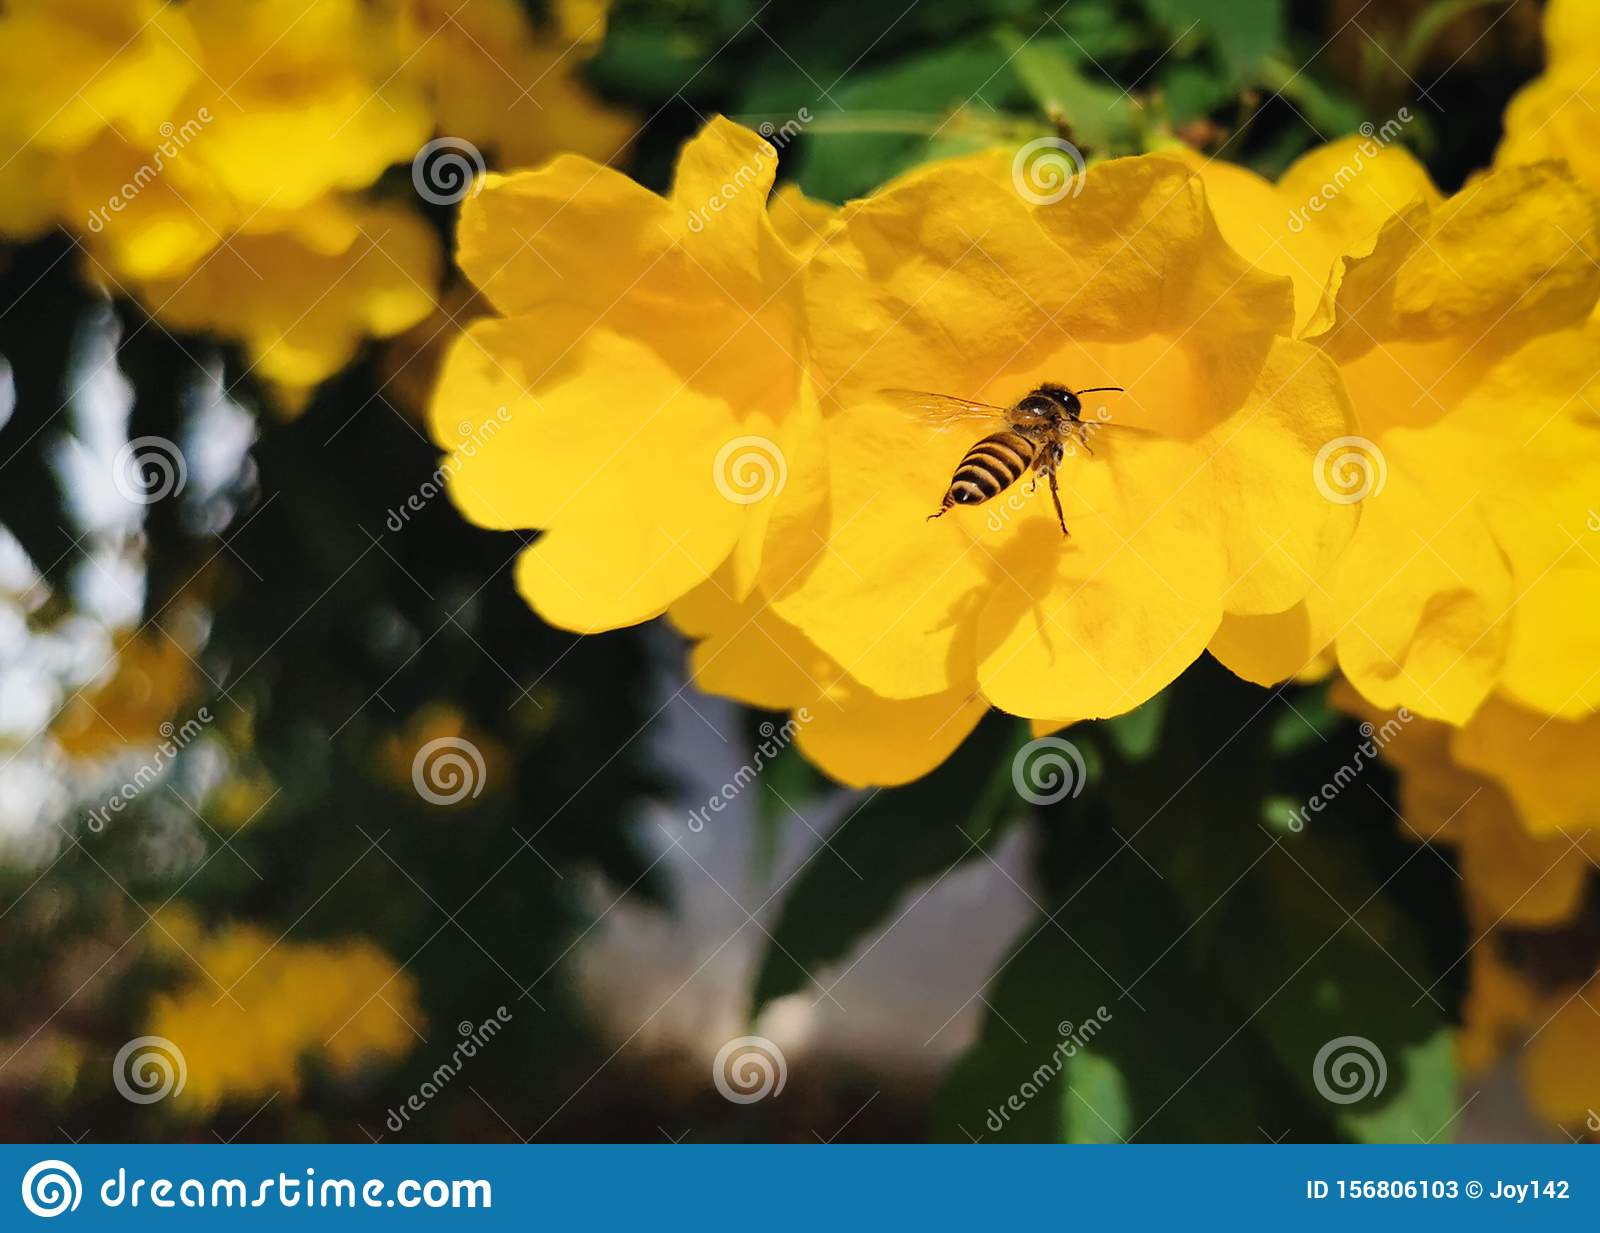 A bee is search for their food